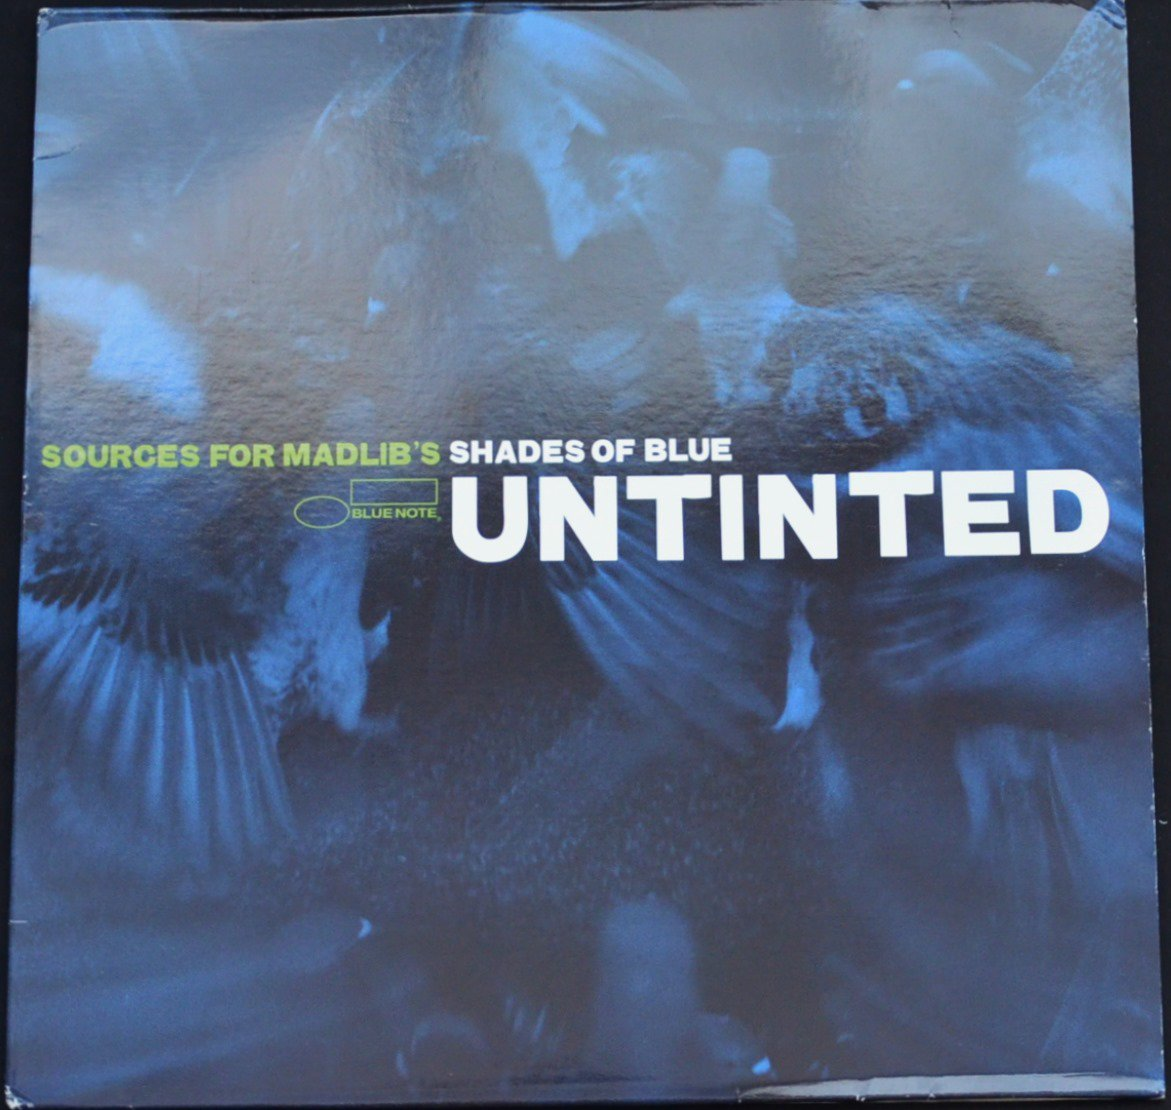 V.A. (MADLIB) /  UNTINTED (SOURCES FOR MADLIB'S SHADES OF BLUE) (2LP)